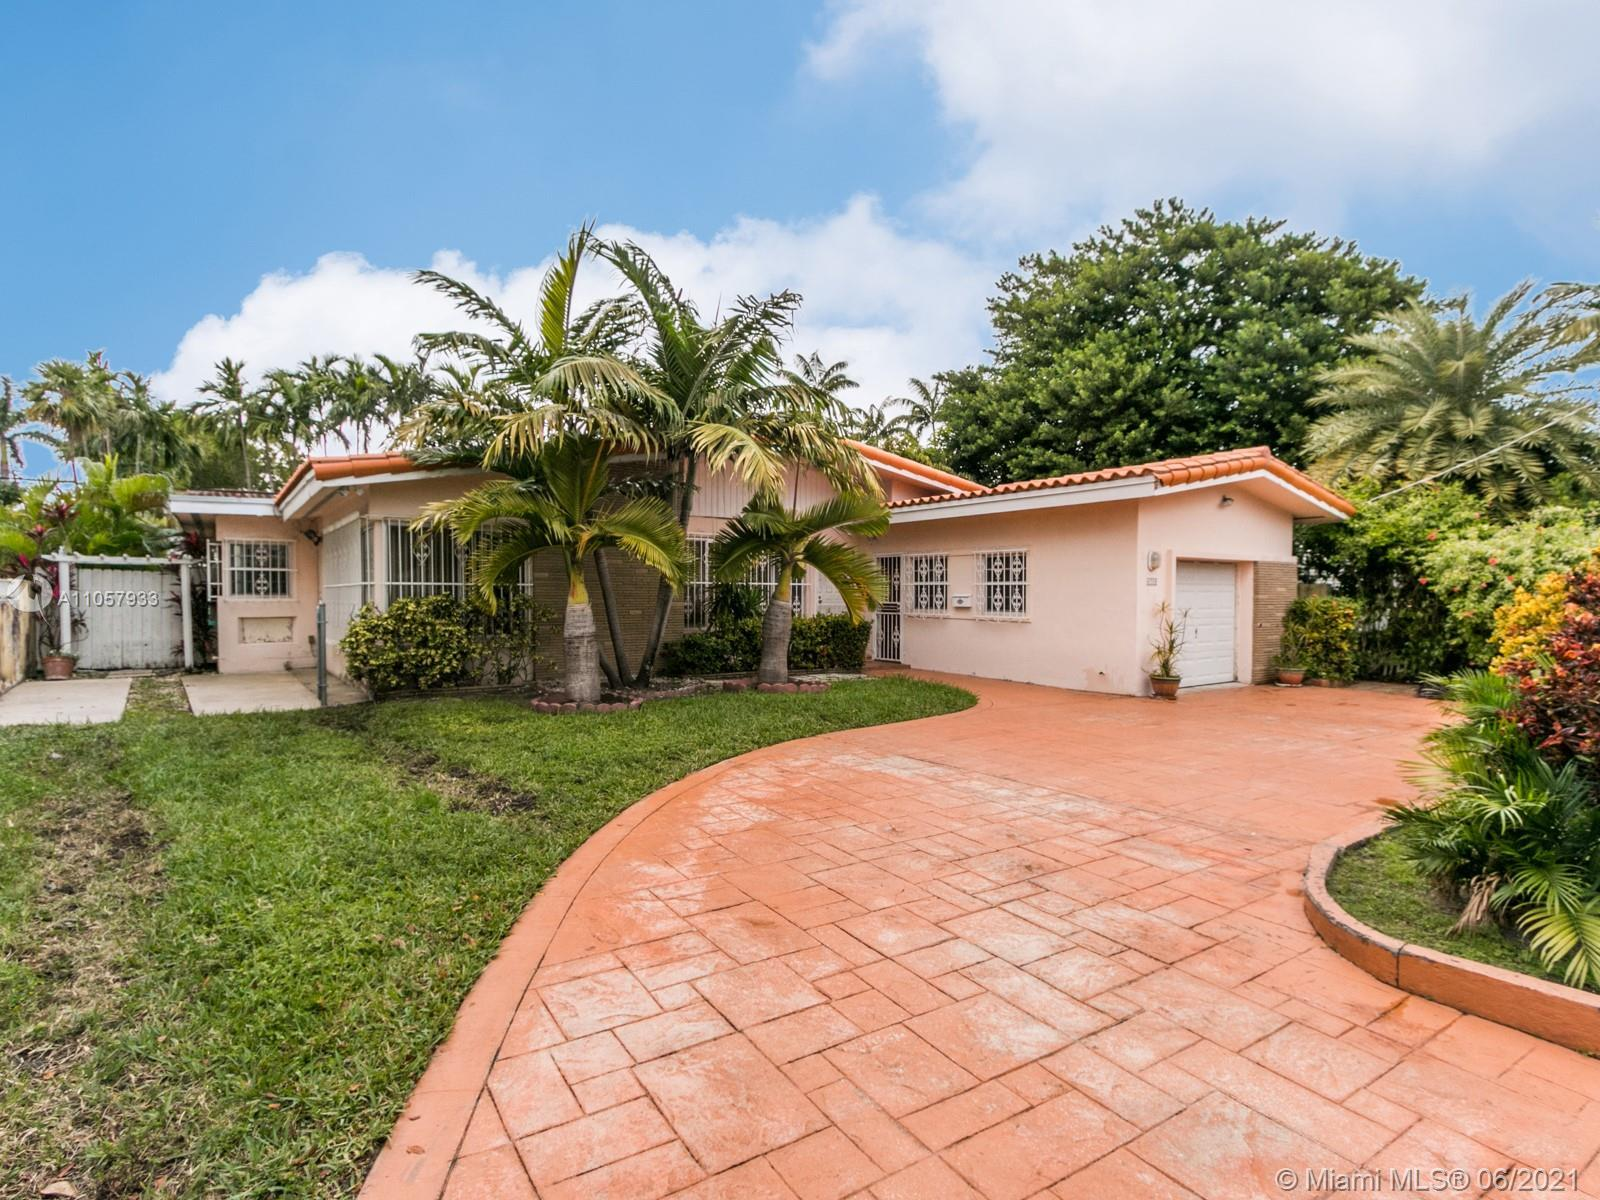 Located in the heart of Miami Beach, this lovely 3 bedroom 2 bath family home has everything you nee